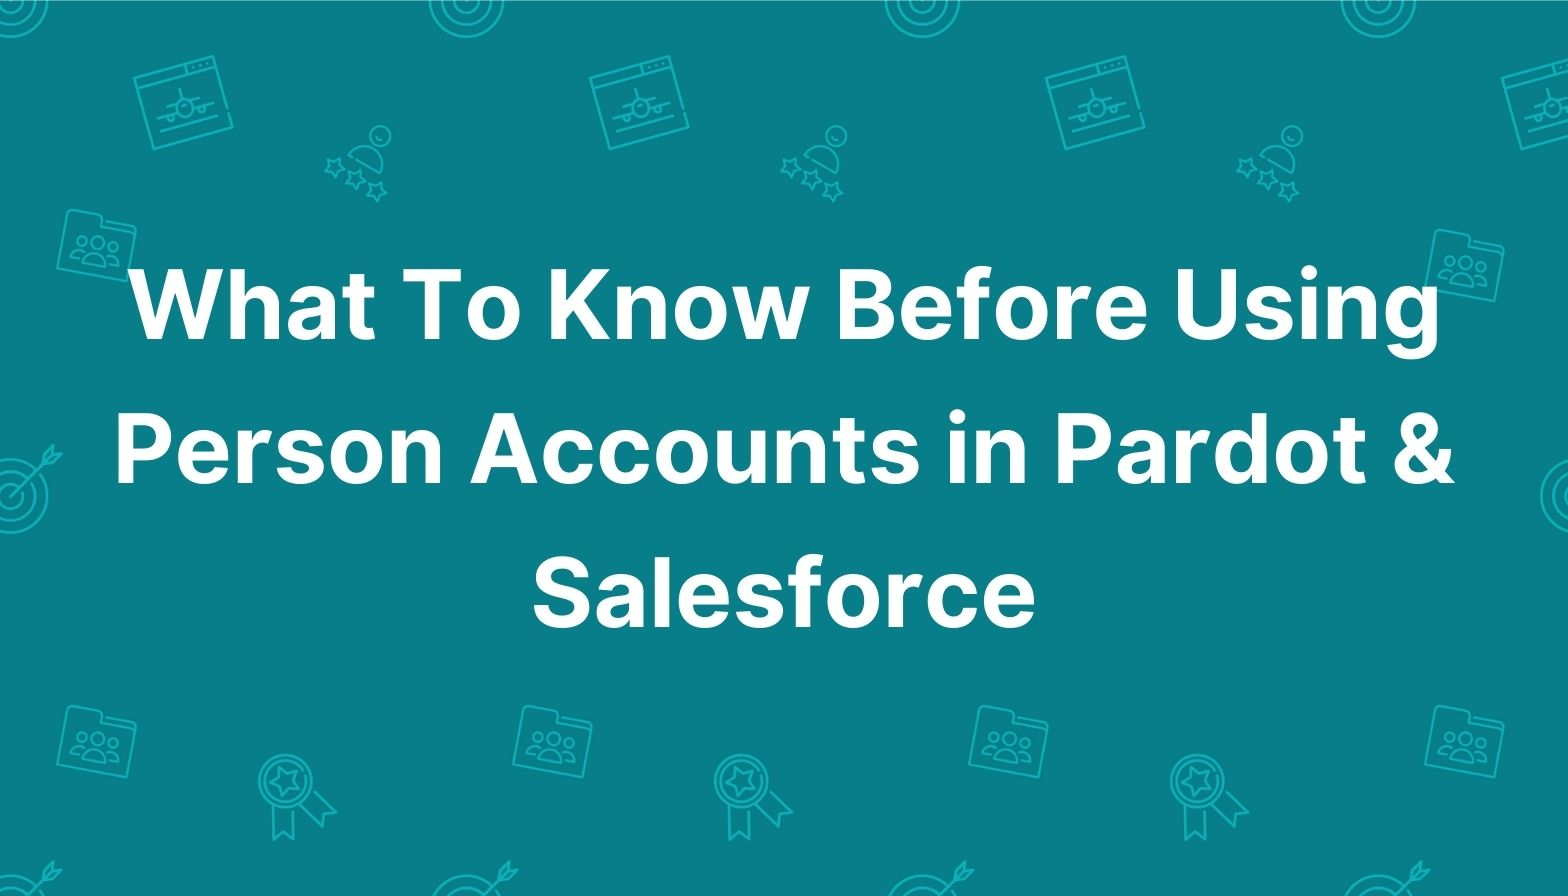 Feature image: What to know before using Person Accounts in Pardot and Salesforce